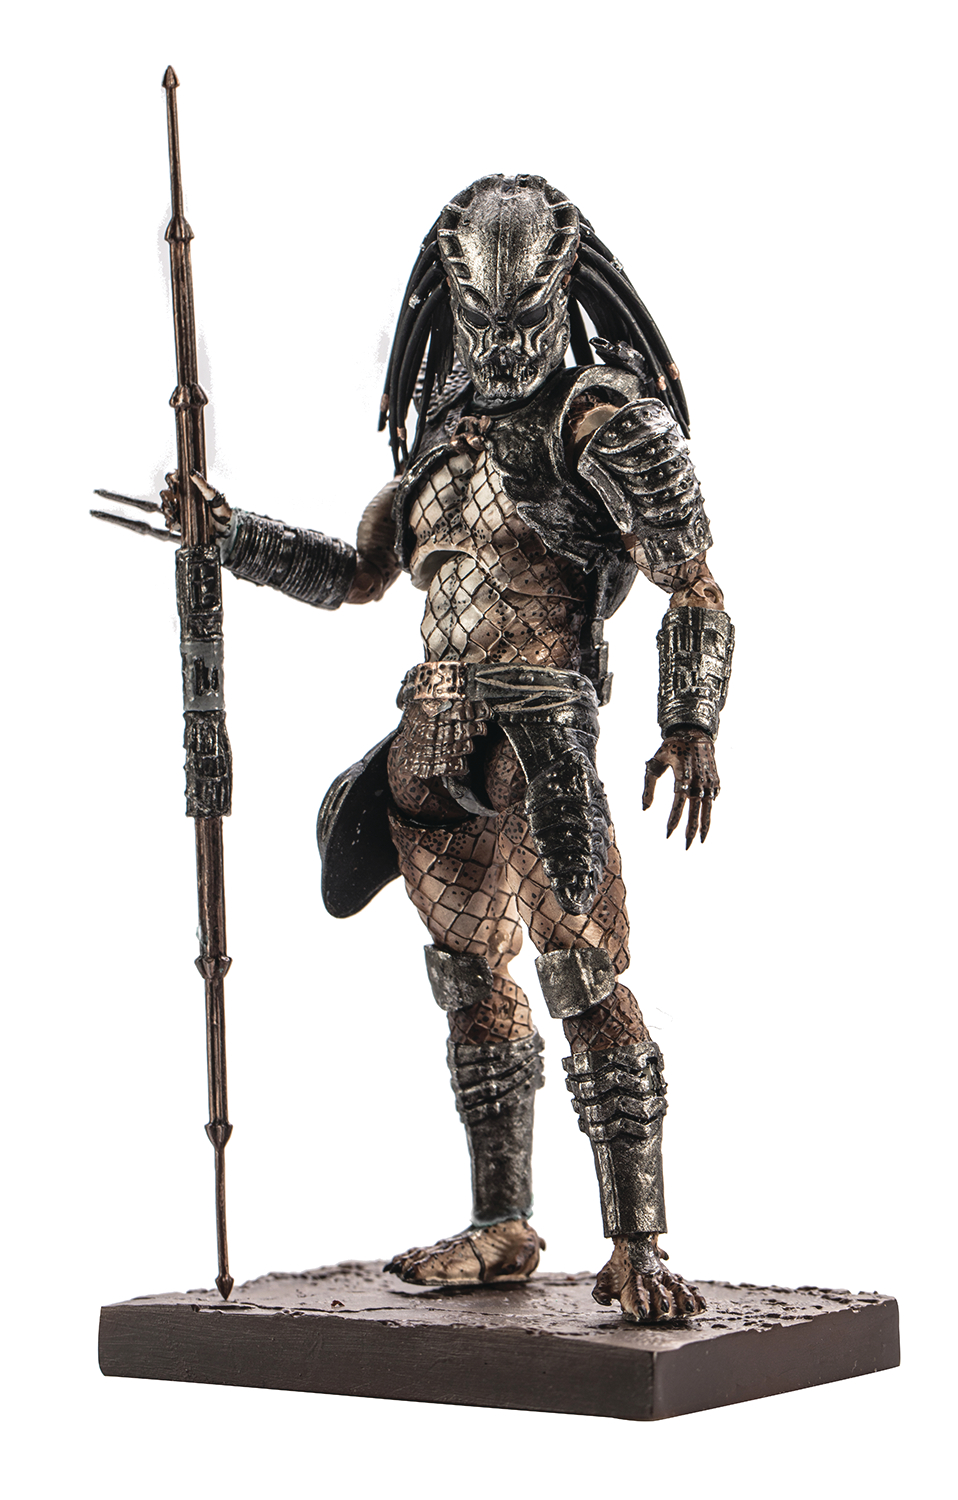 PREDATOR 2 GUARDIAN PREDATOR PX 1/18 SCALE FIG (AUG189256) (